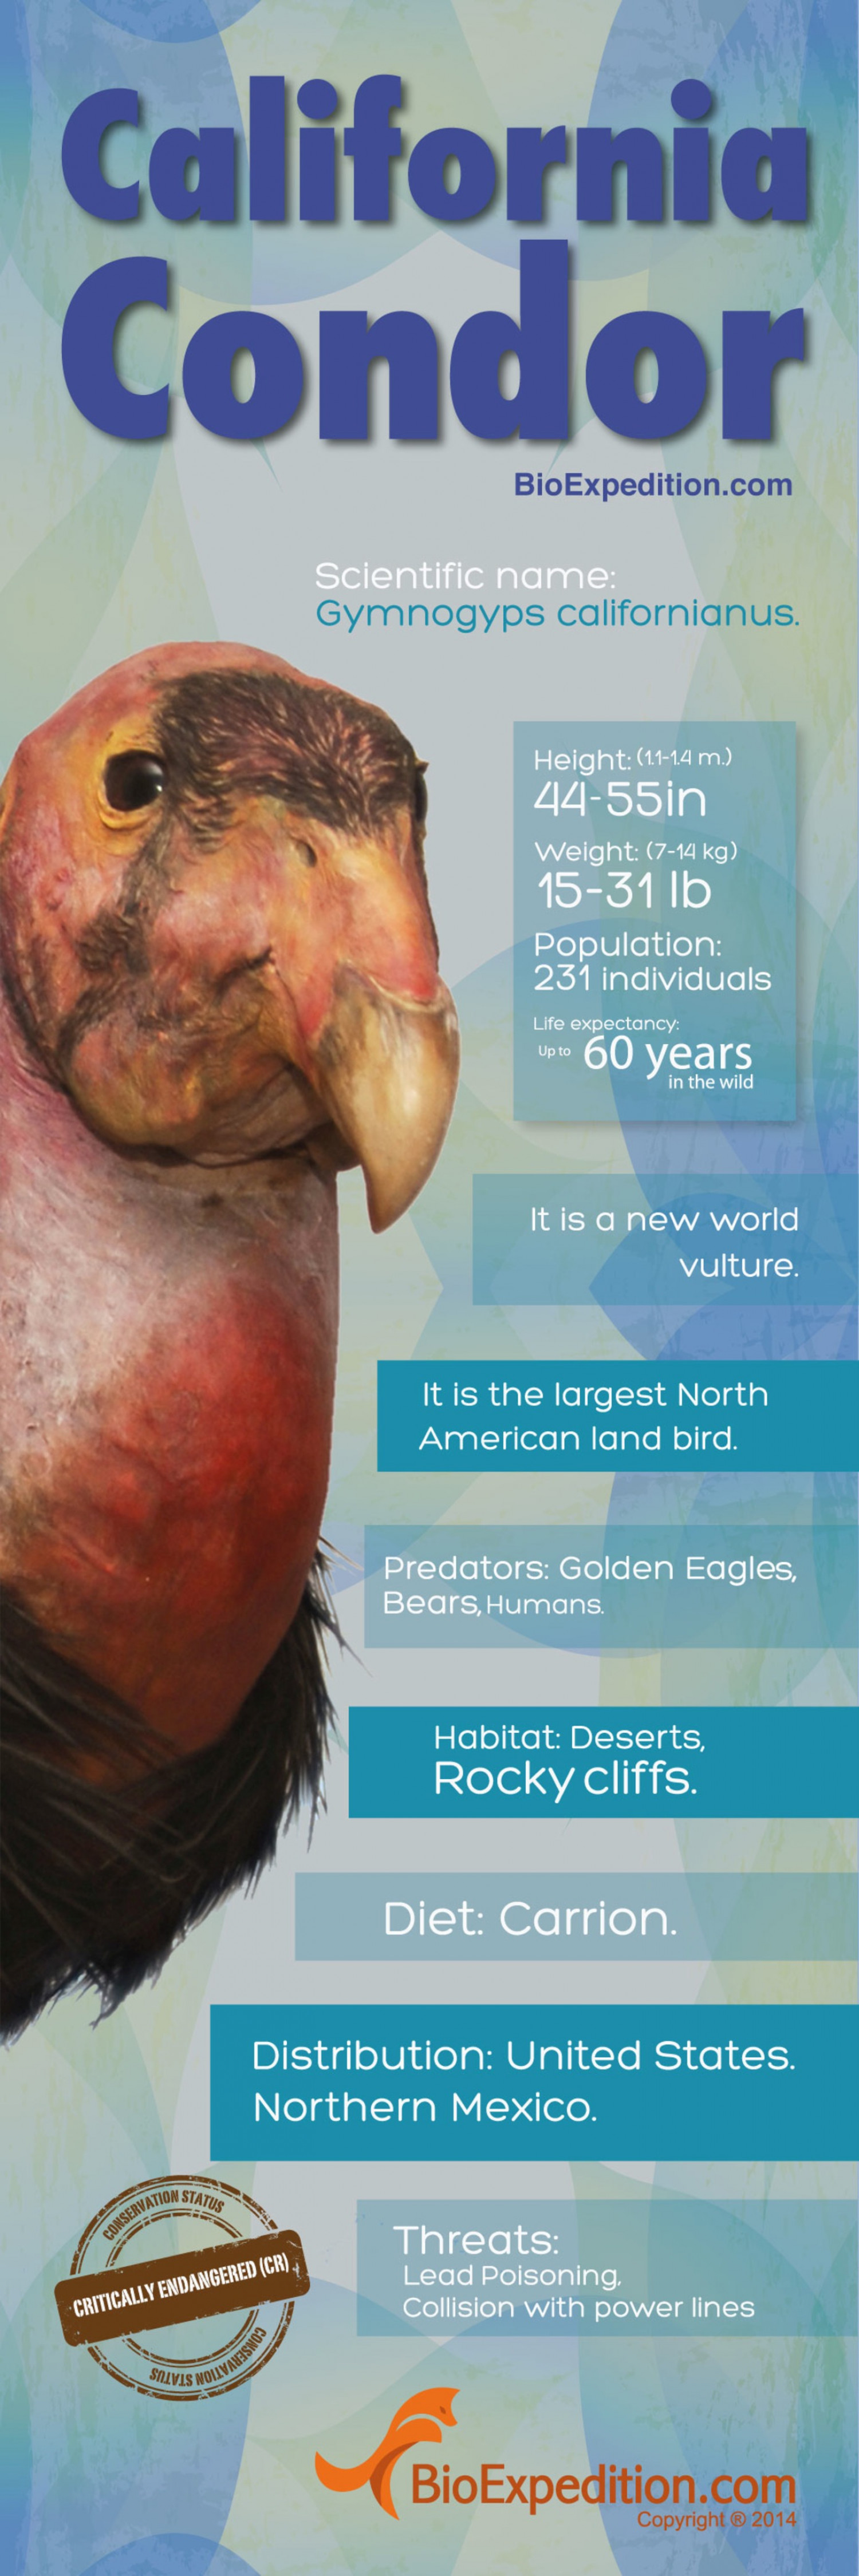 California Condor Infographic